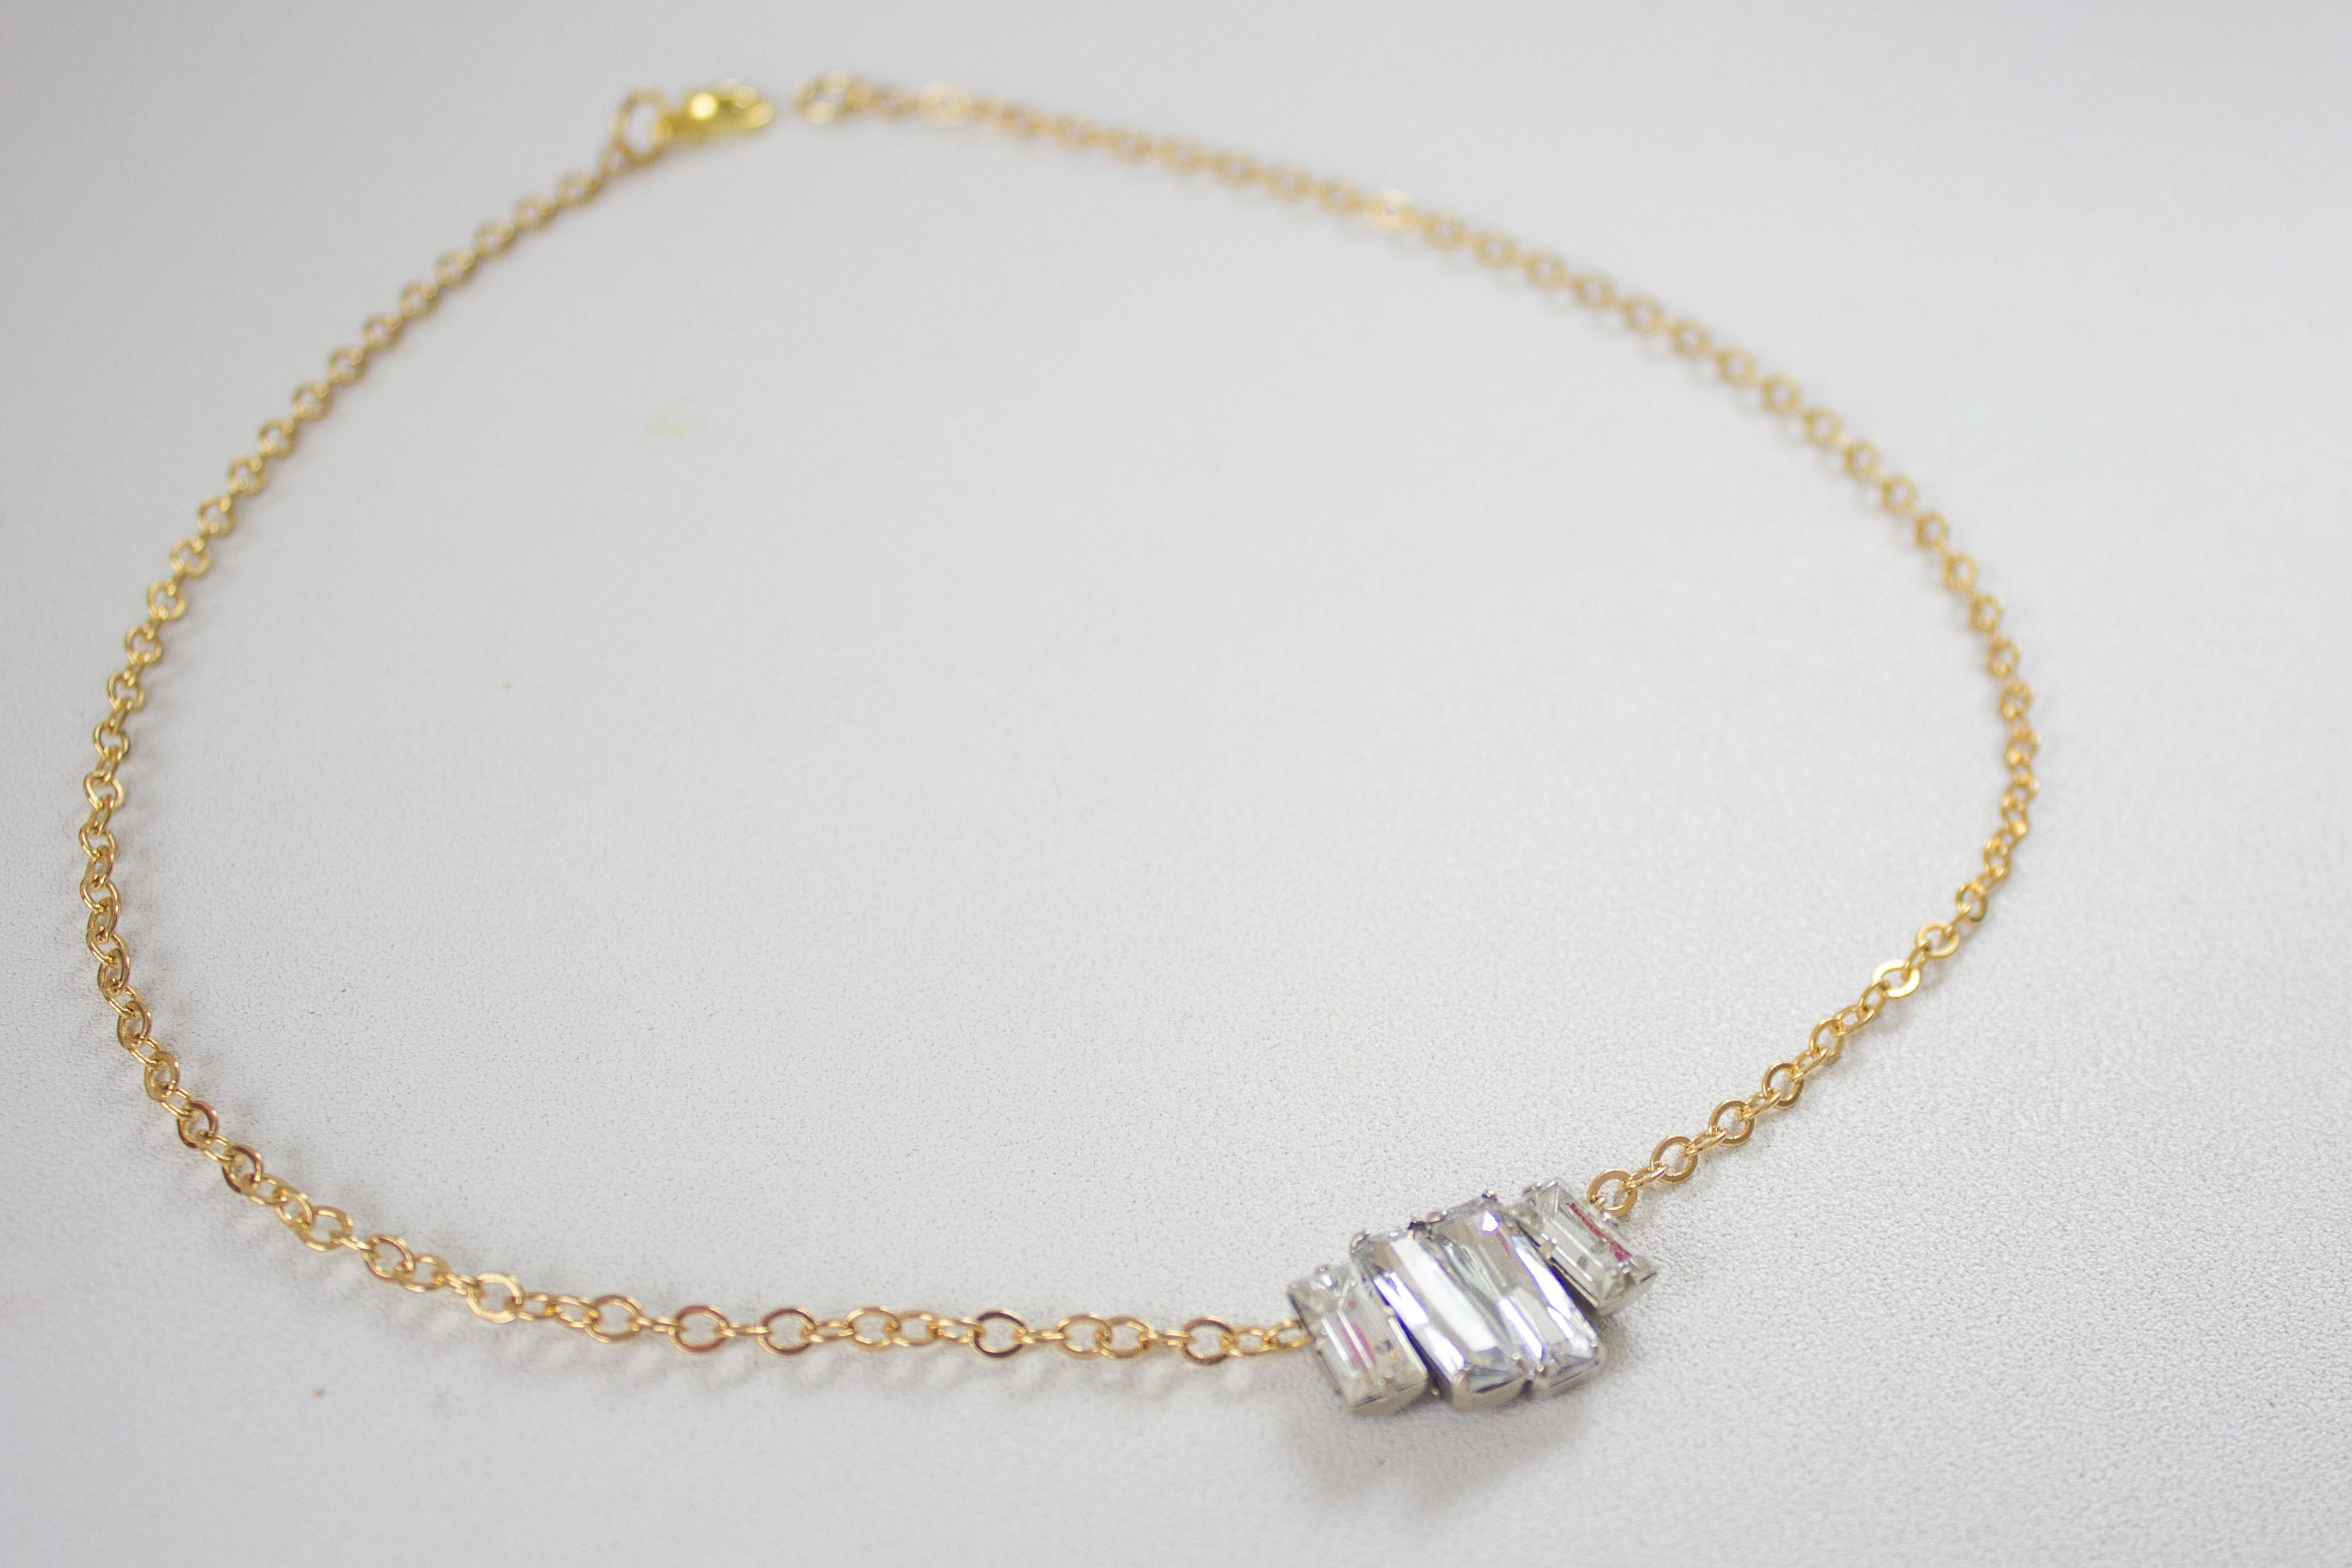 Diy Simple Rhinestone Necklace Lusting Lavish